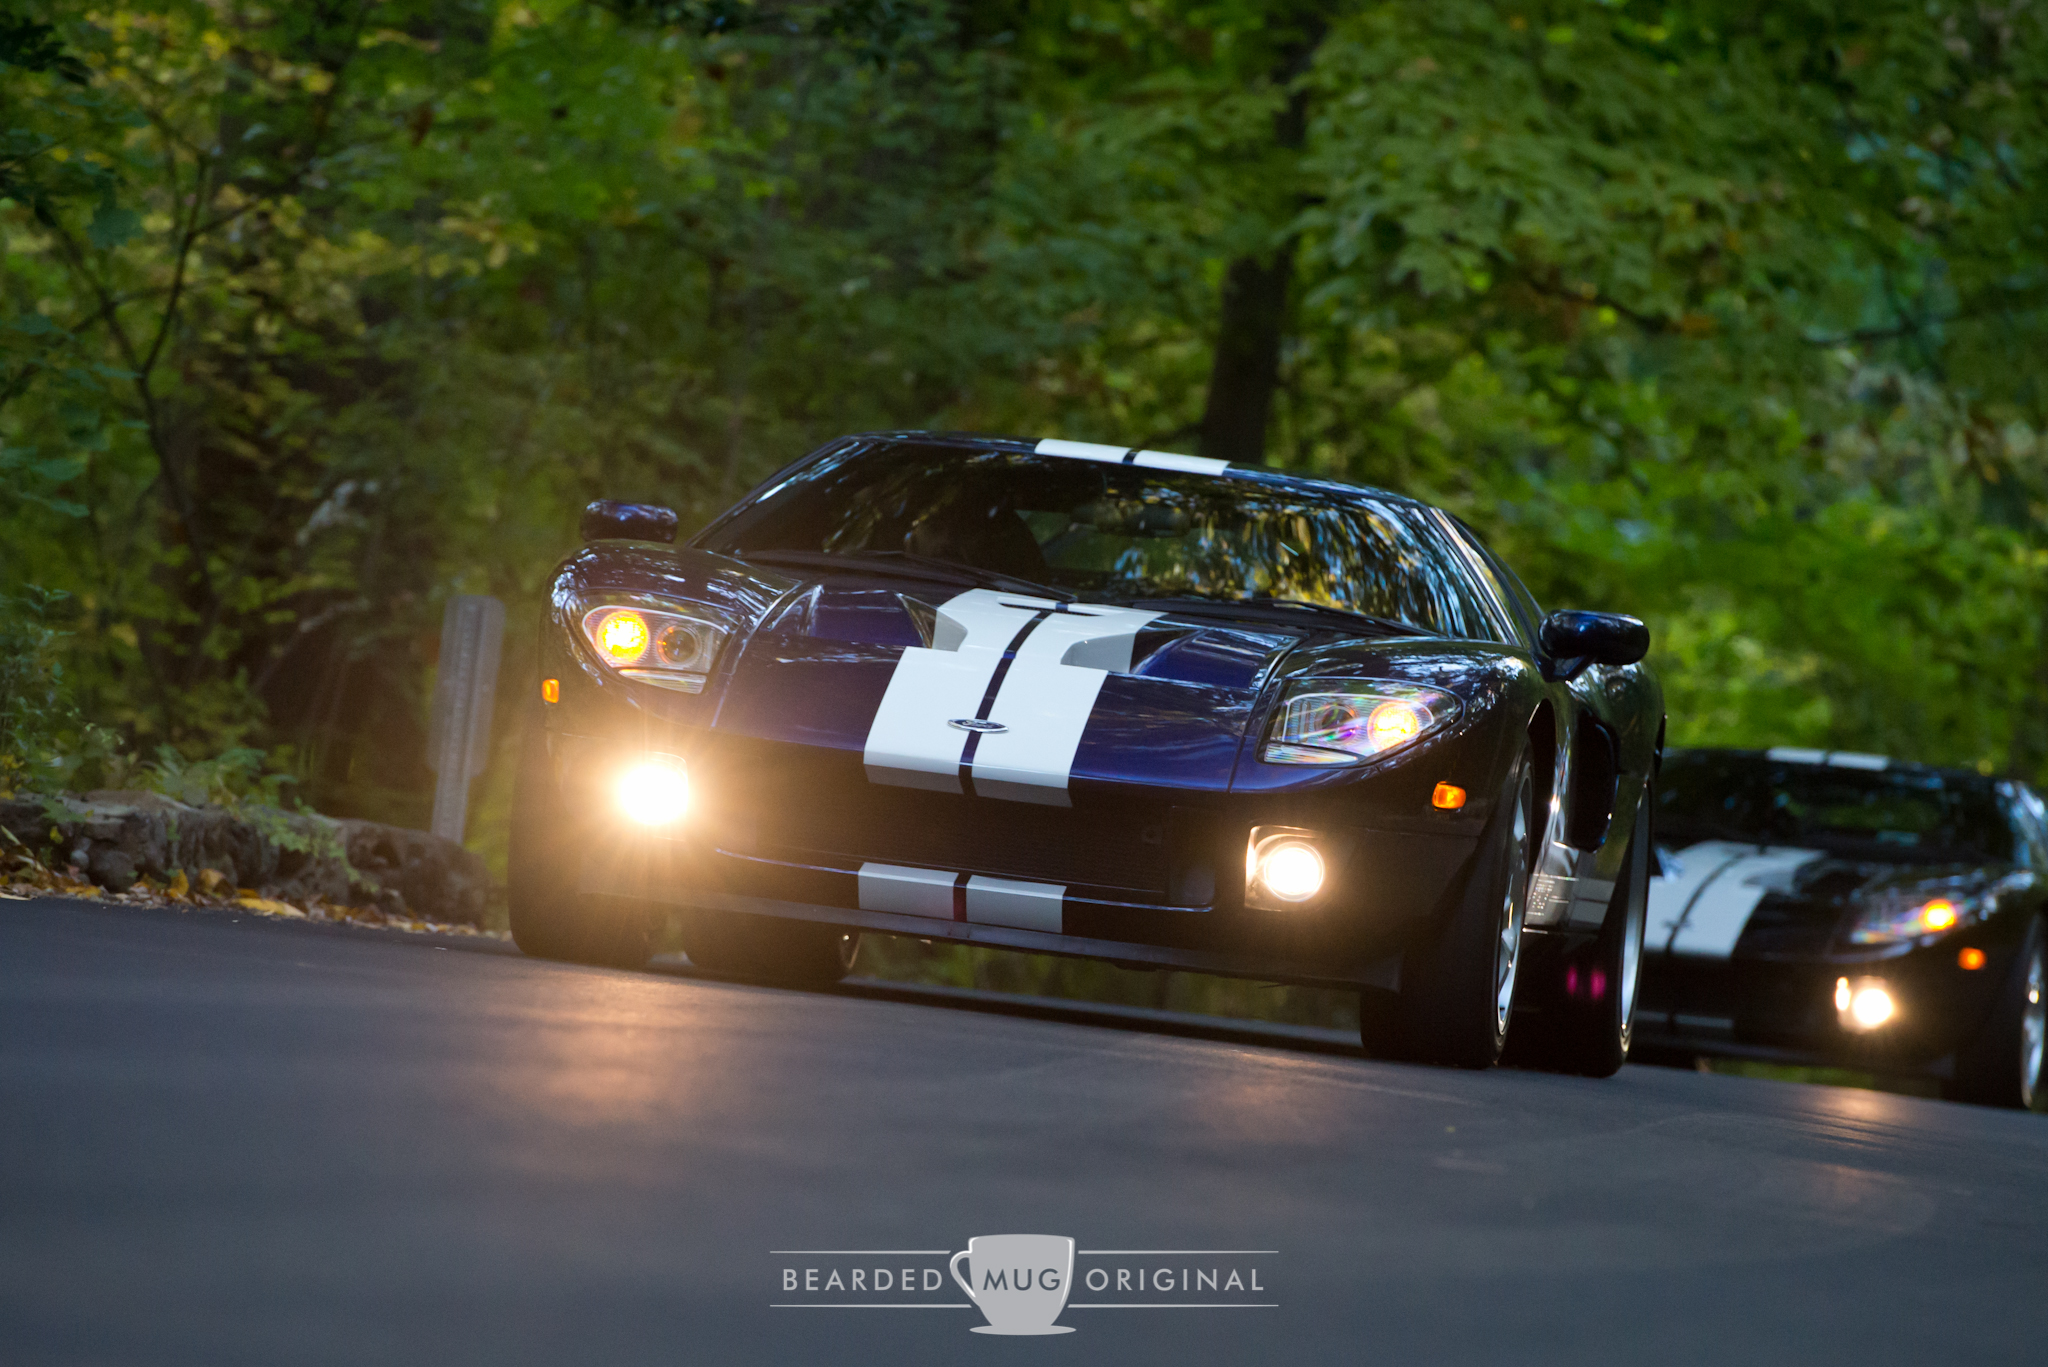 Ford matter-of-factly named the colors of the GT as they saw it. Here we have a Blue leading a Black through the woods at Waveny Park.